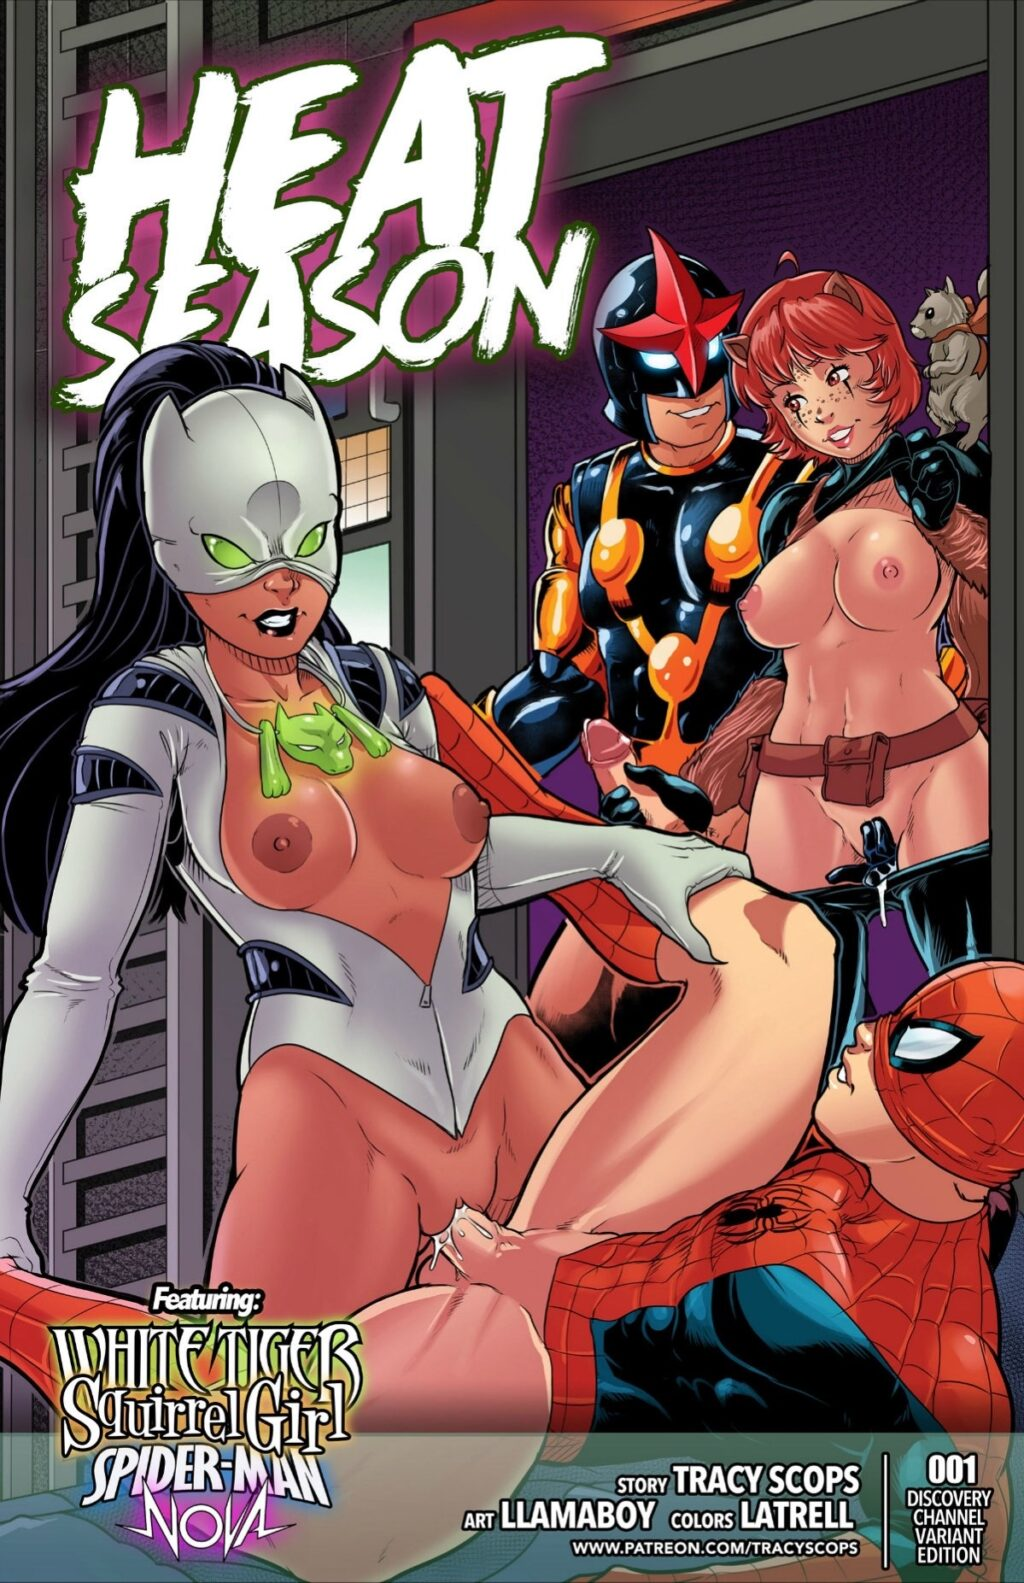 Marvel-porn-comics-Heat-Season-squirrel-Girl-White-Tiger-Spiderman-Yoga-Pants-Latex-suit-Tracy-Scops-superhero-FemDom-domination-bisexual-group-sex-nova-Corp-creampie